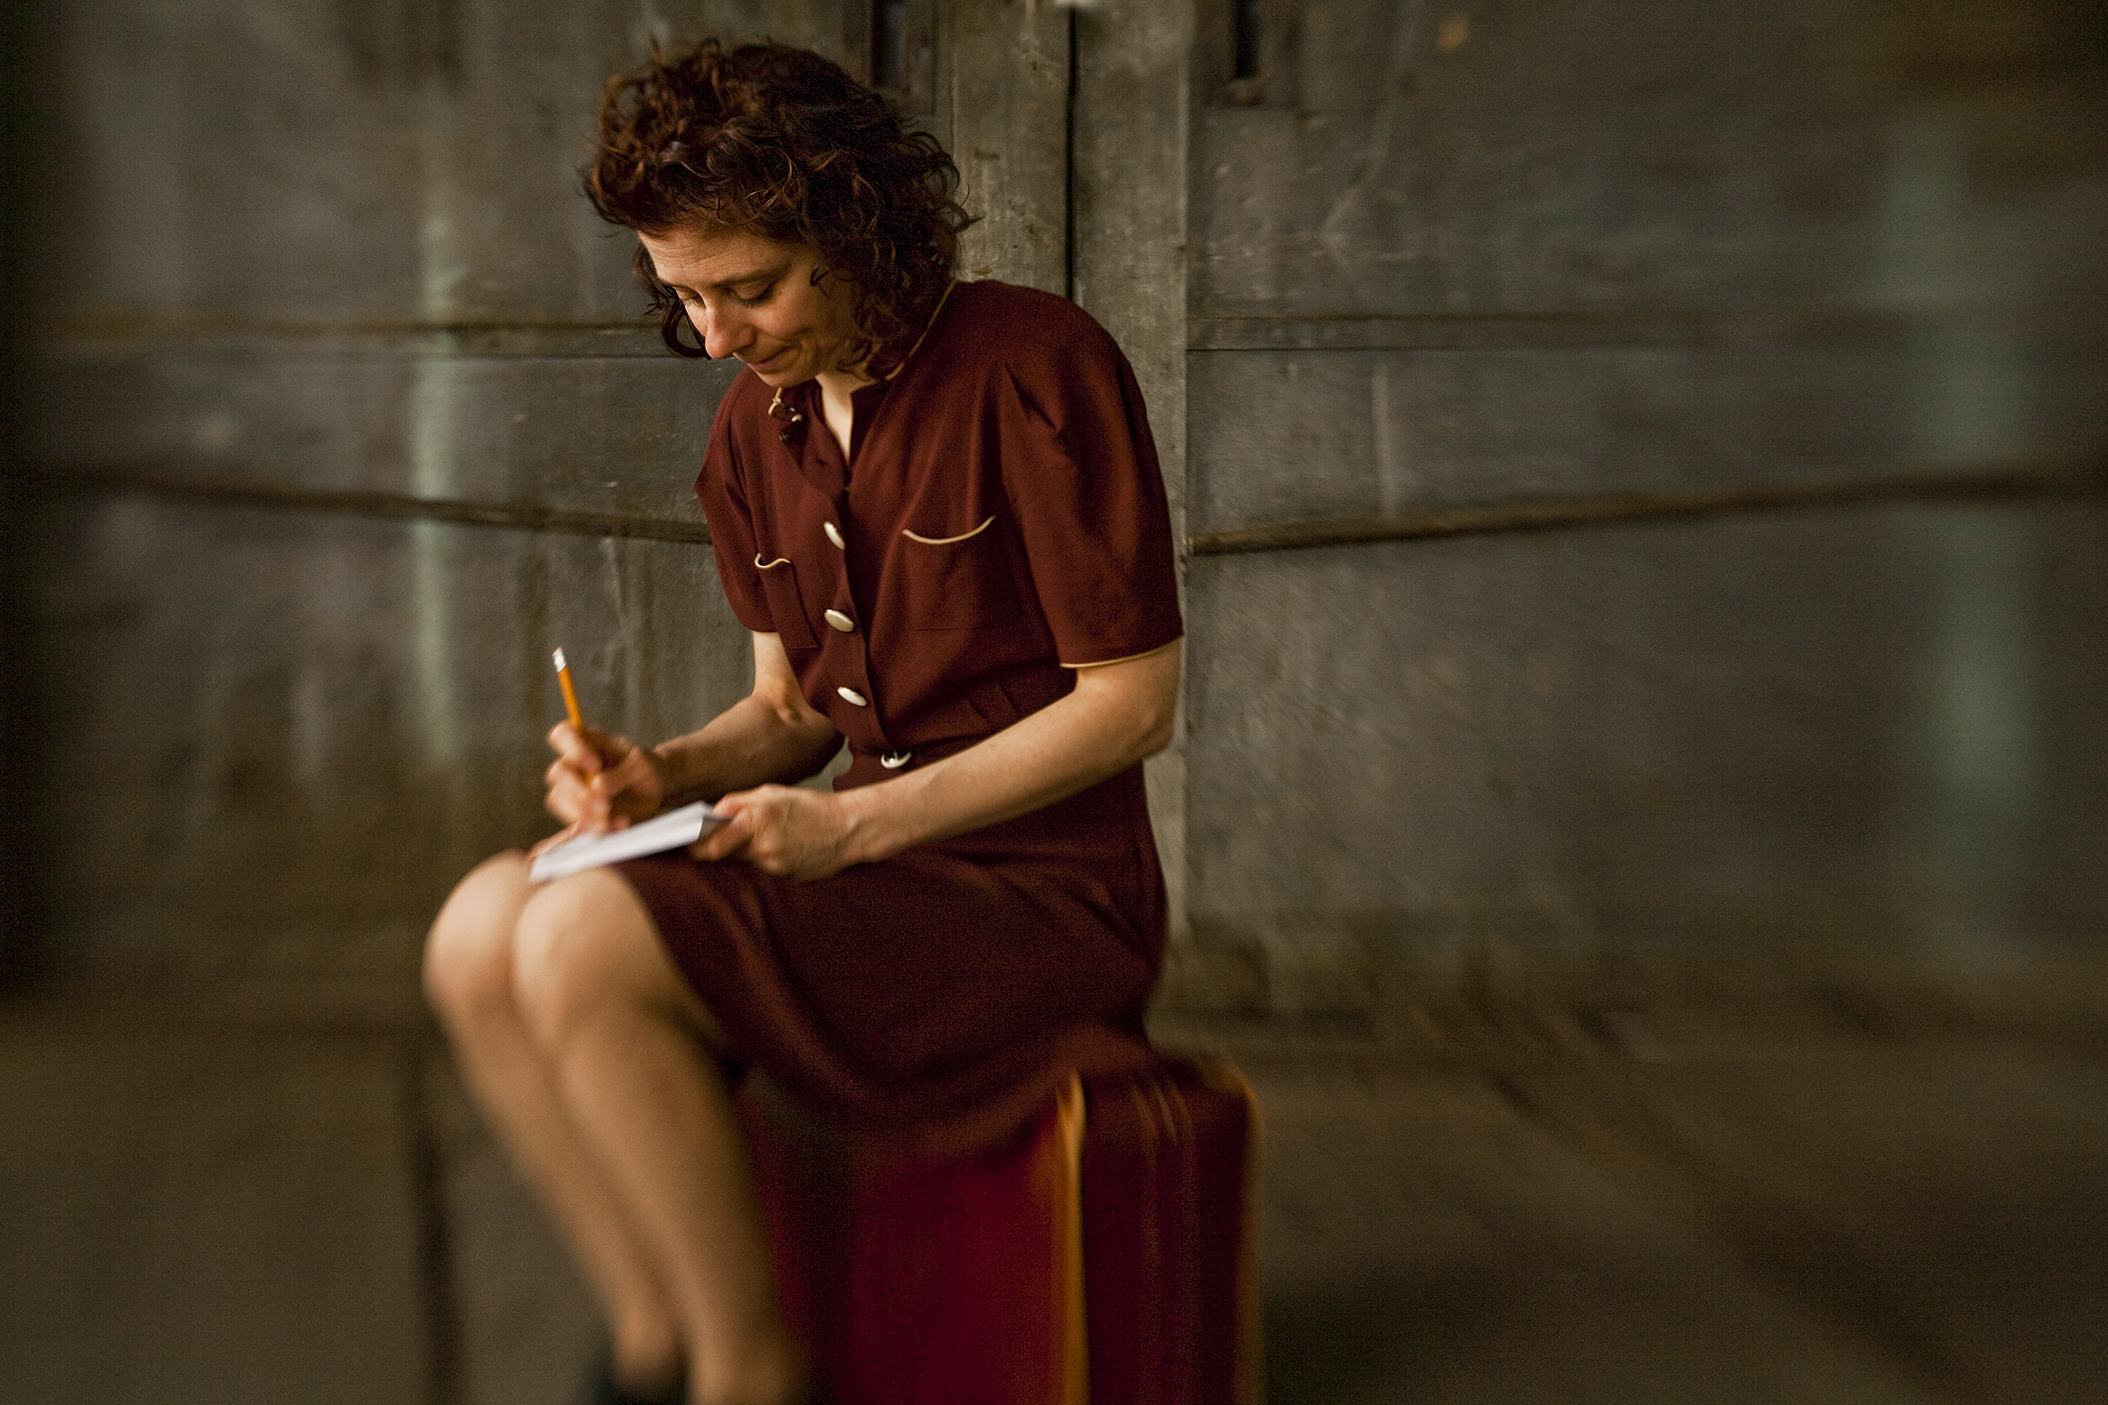 Susan Stein plays the diarist and Holocaust victim Etty Hillesum in 'Etty.' (photo: Ricardo Barros)